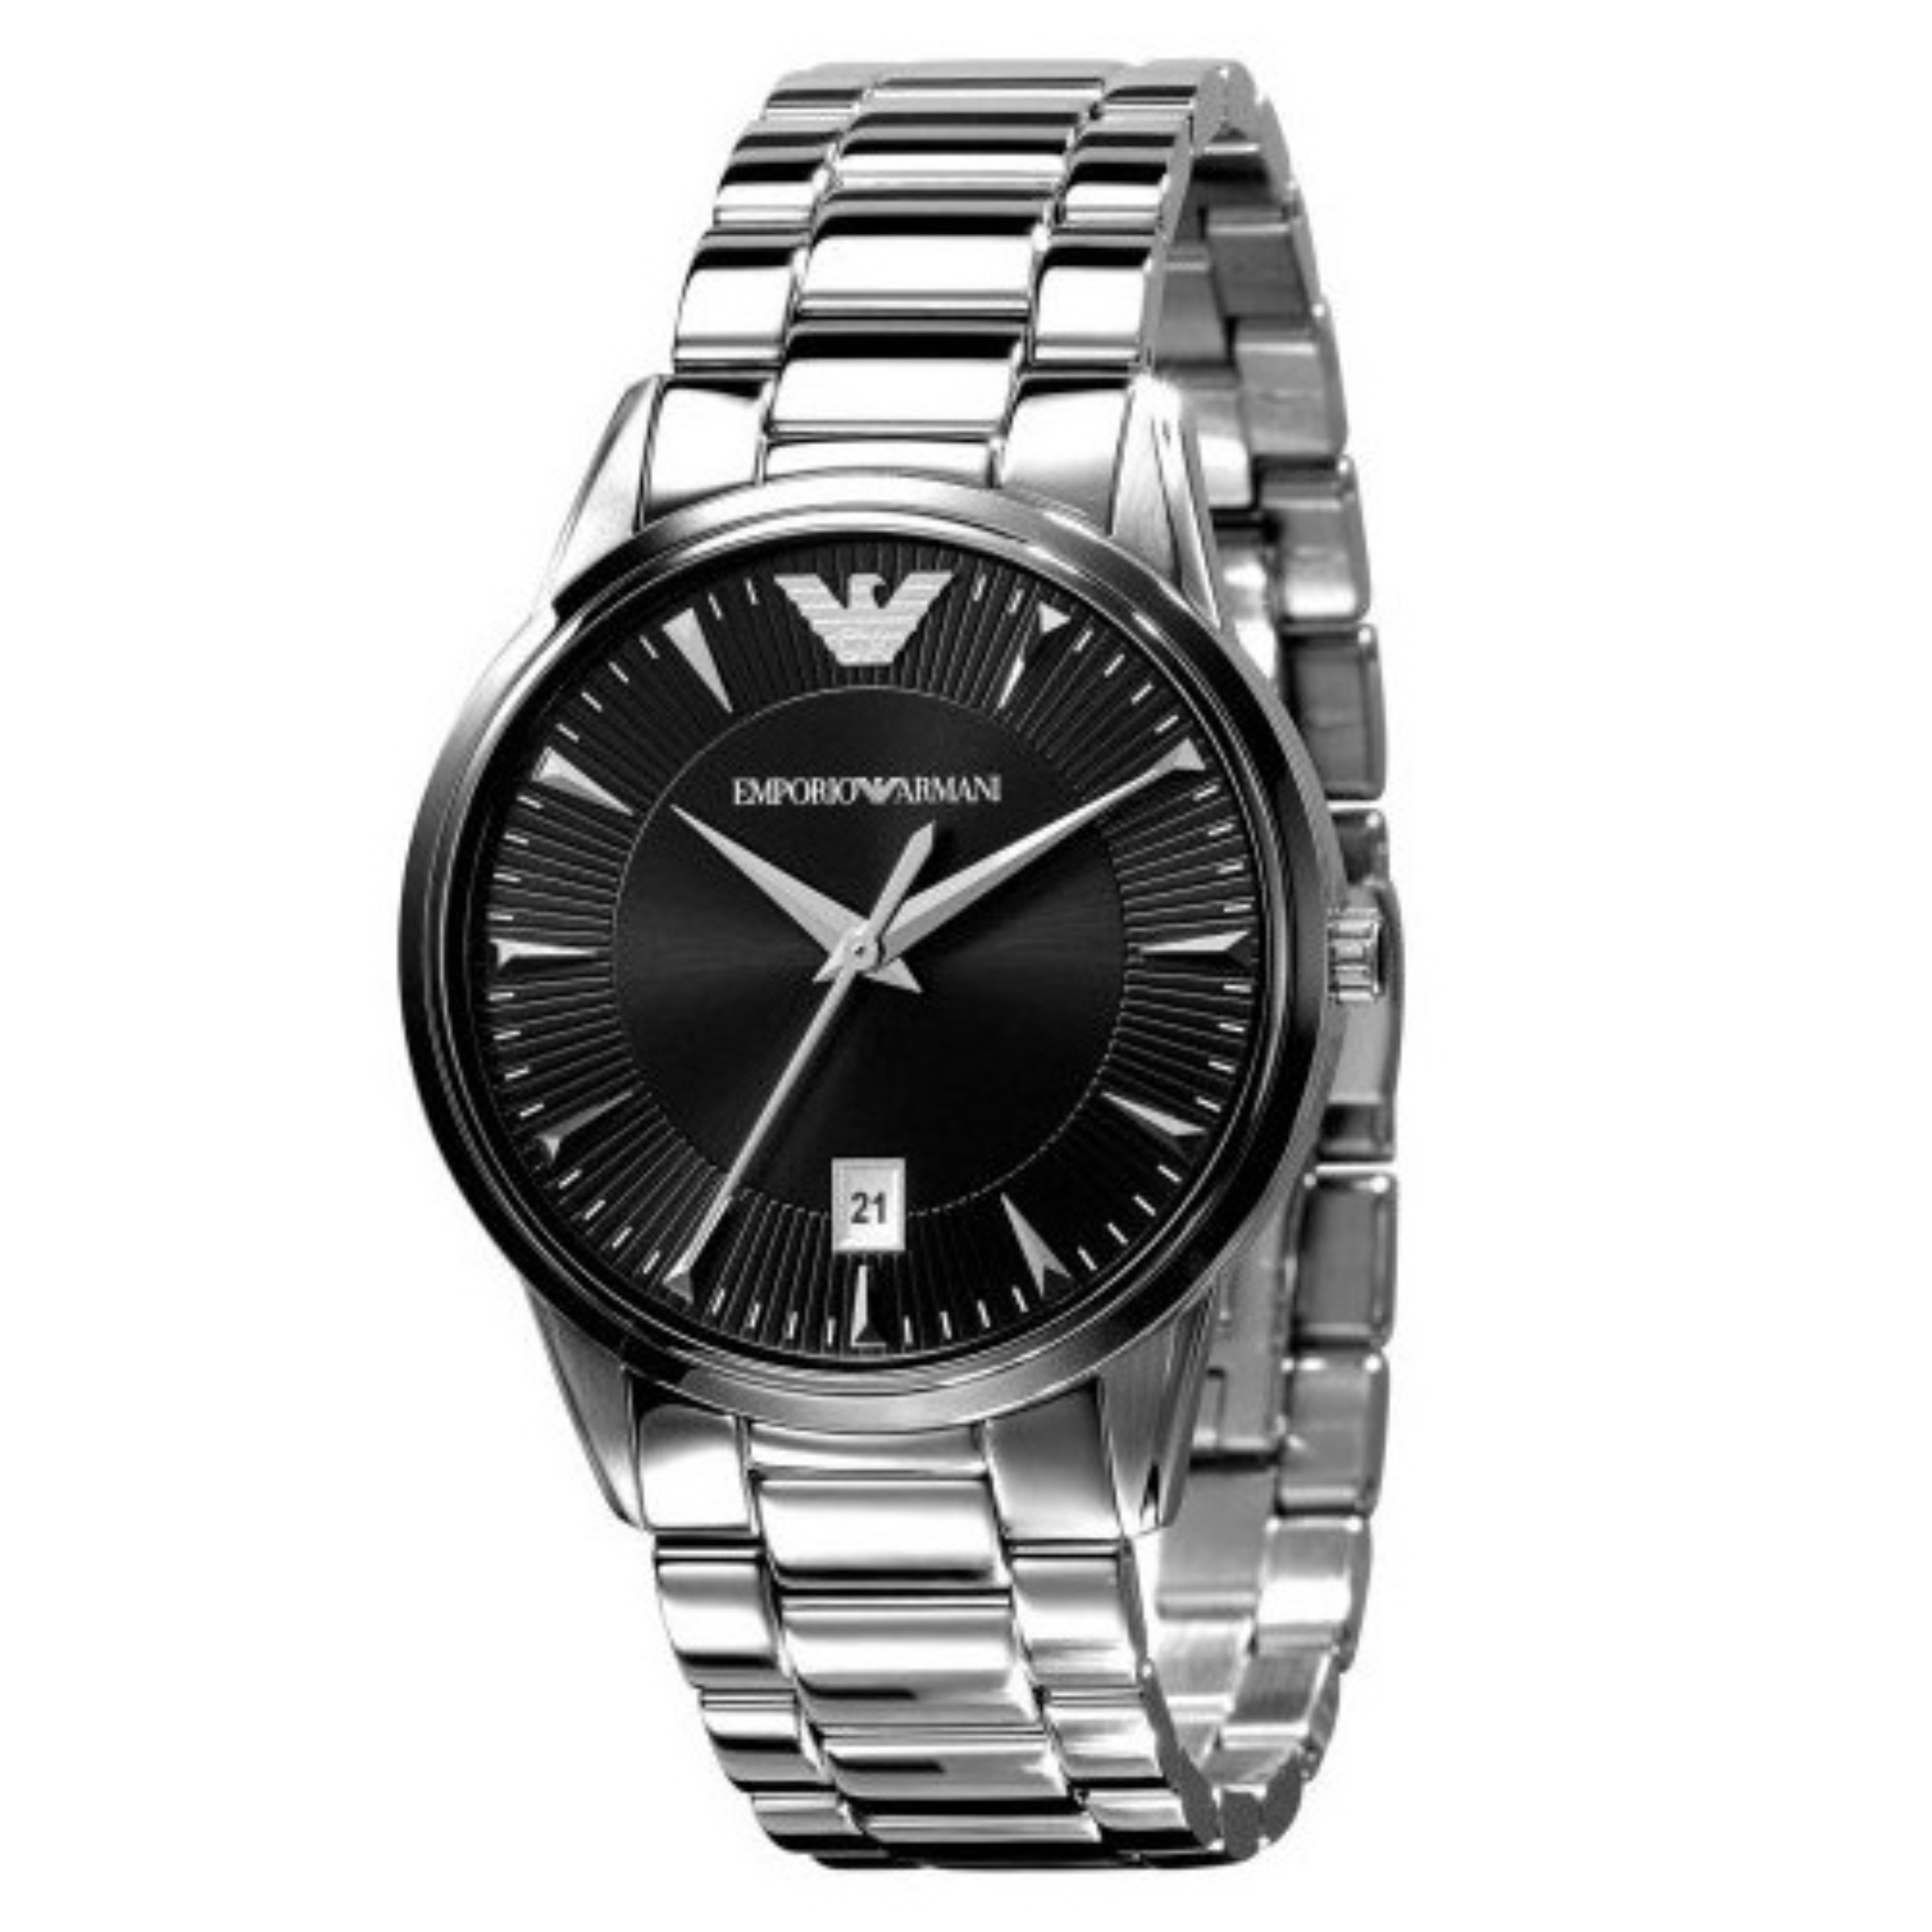 Emporio Armani Classic Unisex Watch | Black Round Dial | Stainless Strap | AR2440